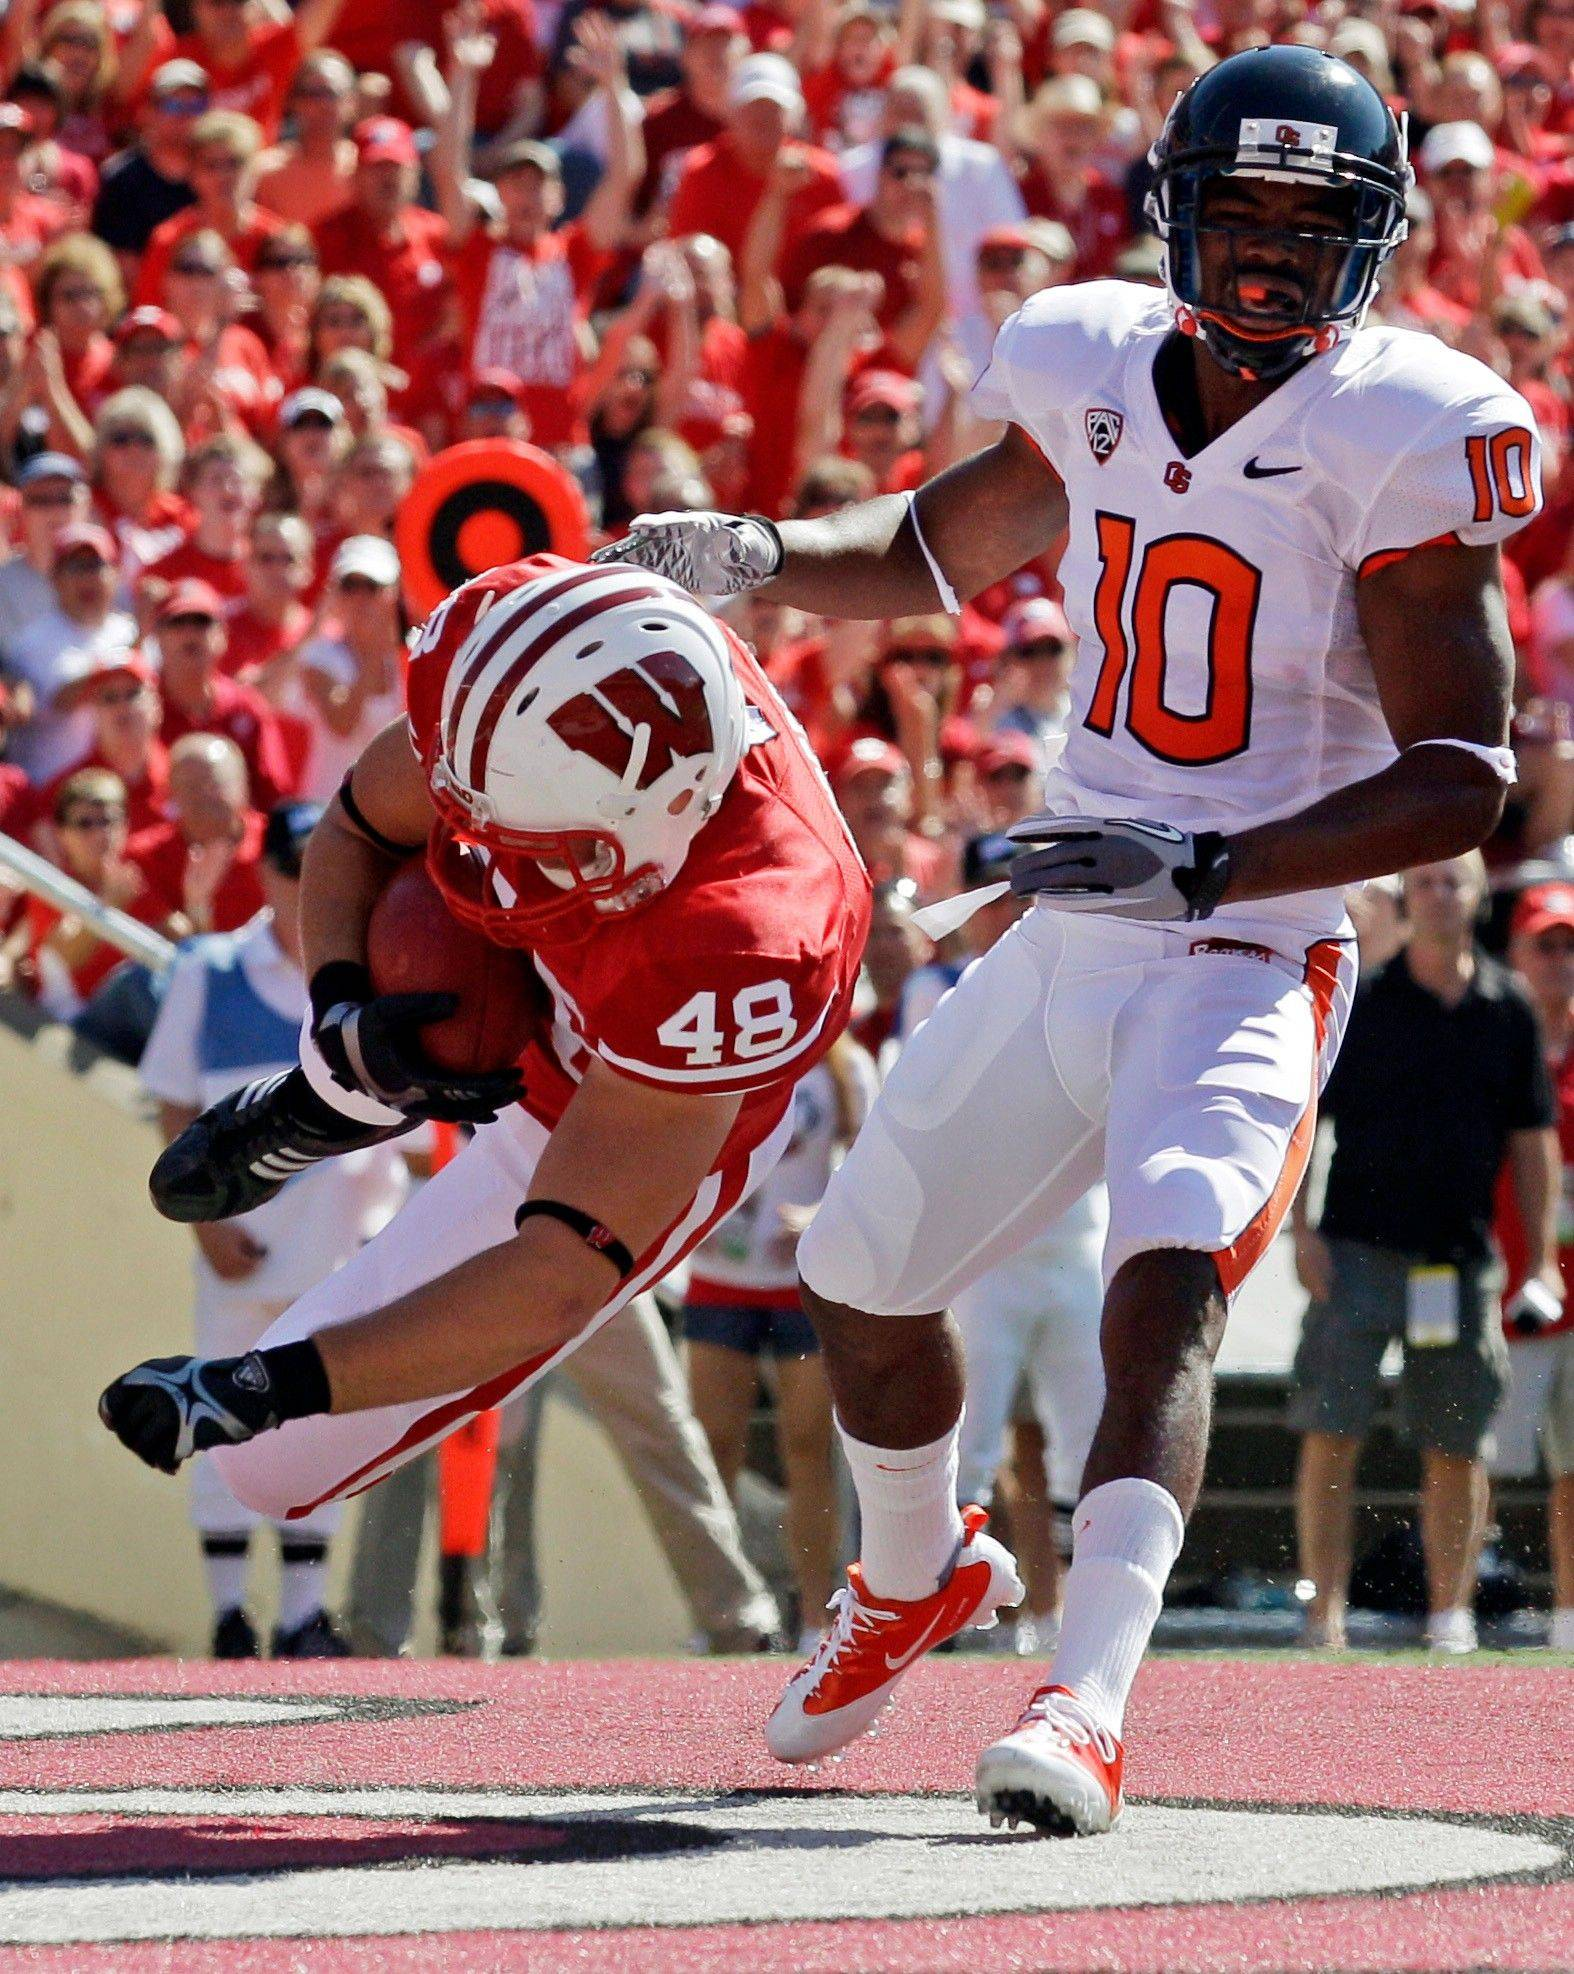 Wisconsin's Jacob Pedersen catches a touchdown pass in front of Oregon State's Lance Mitchell during the first half Saturday in Madison. Wisconsin beat Oregon State 35-0.